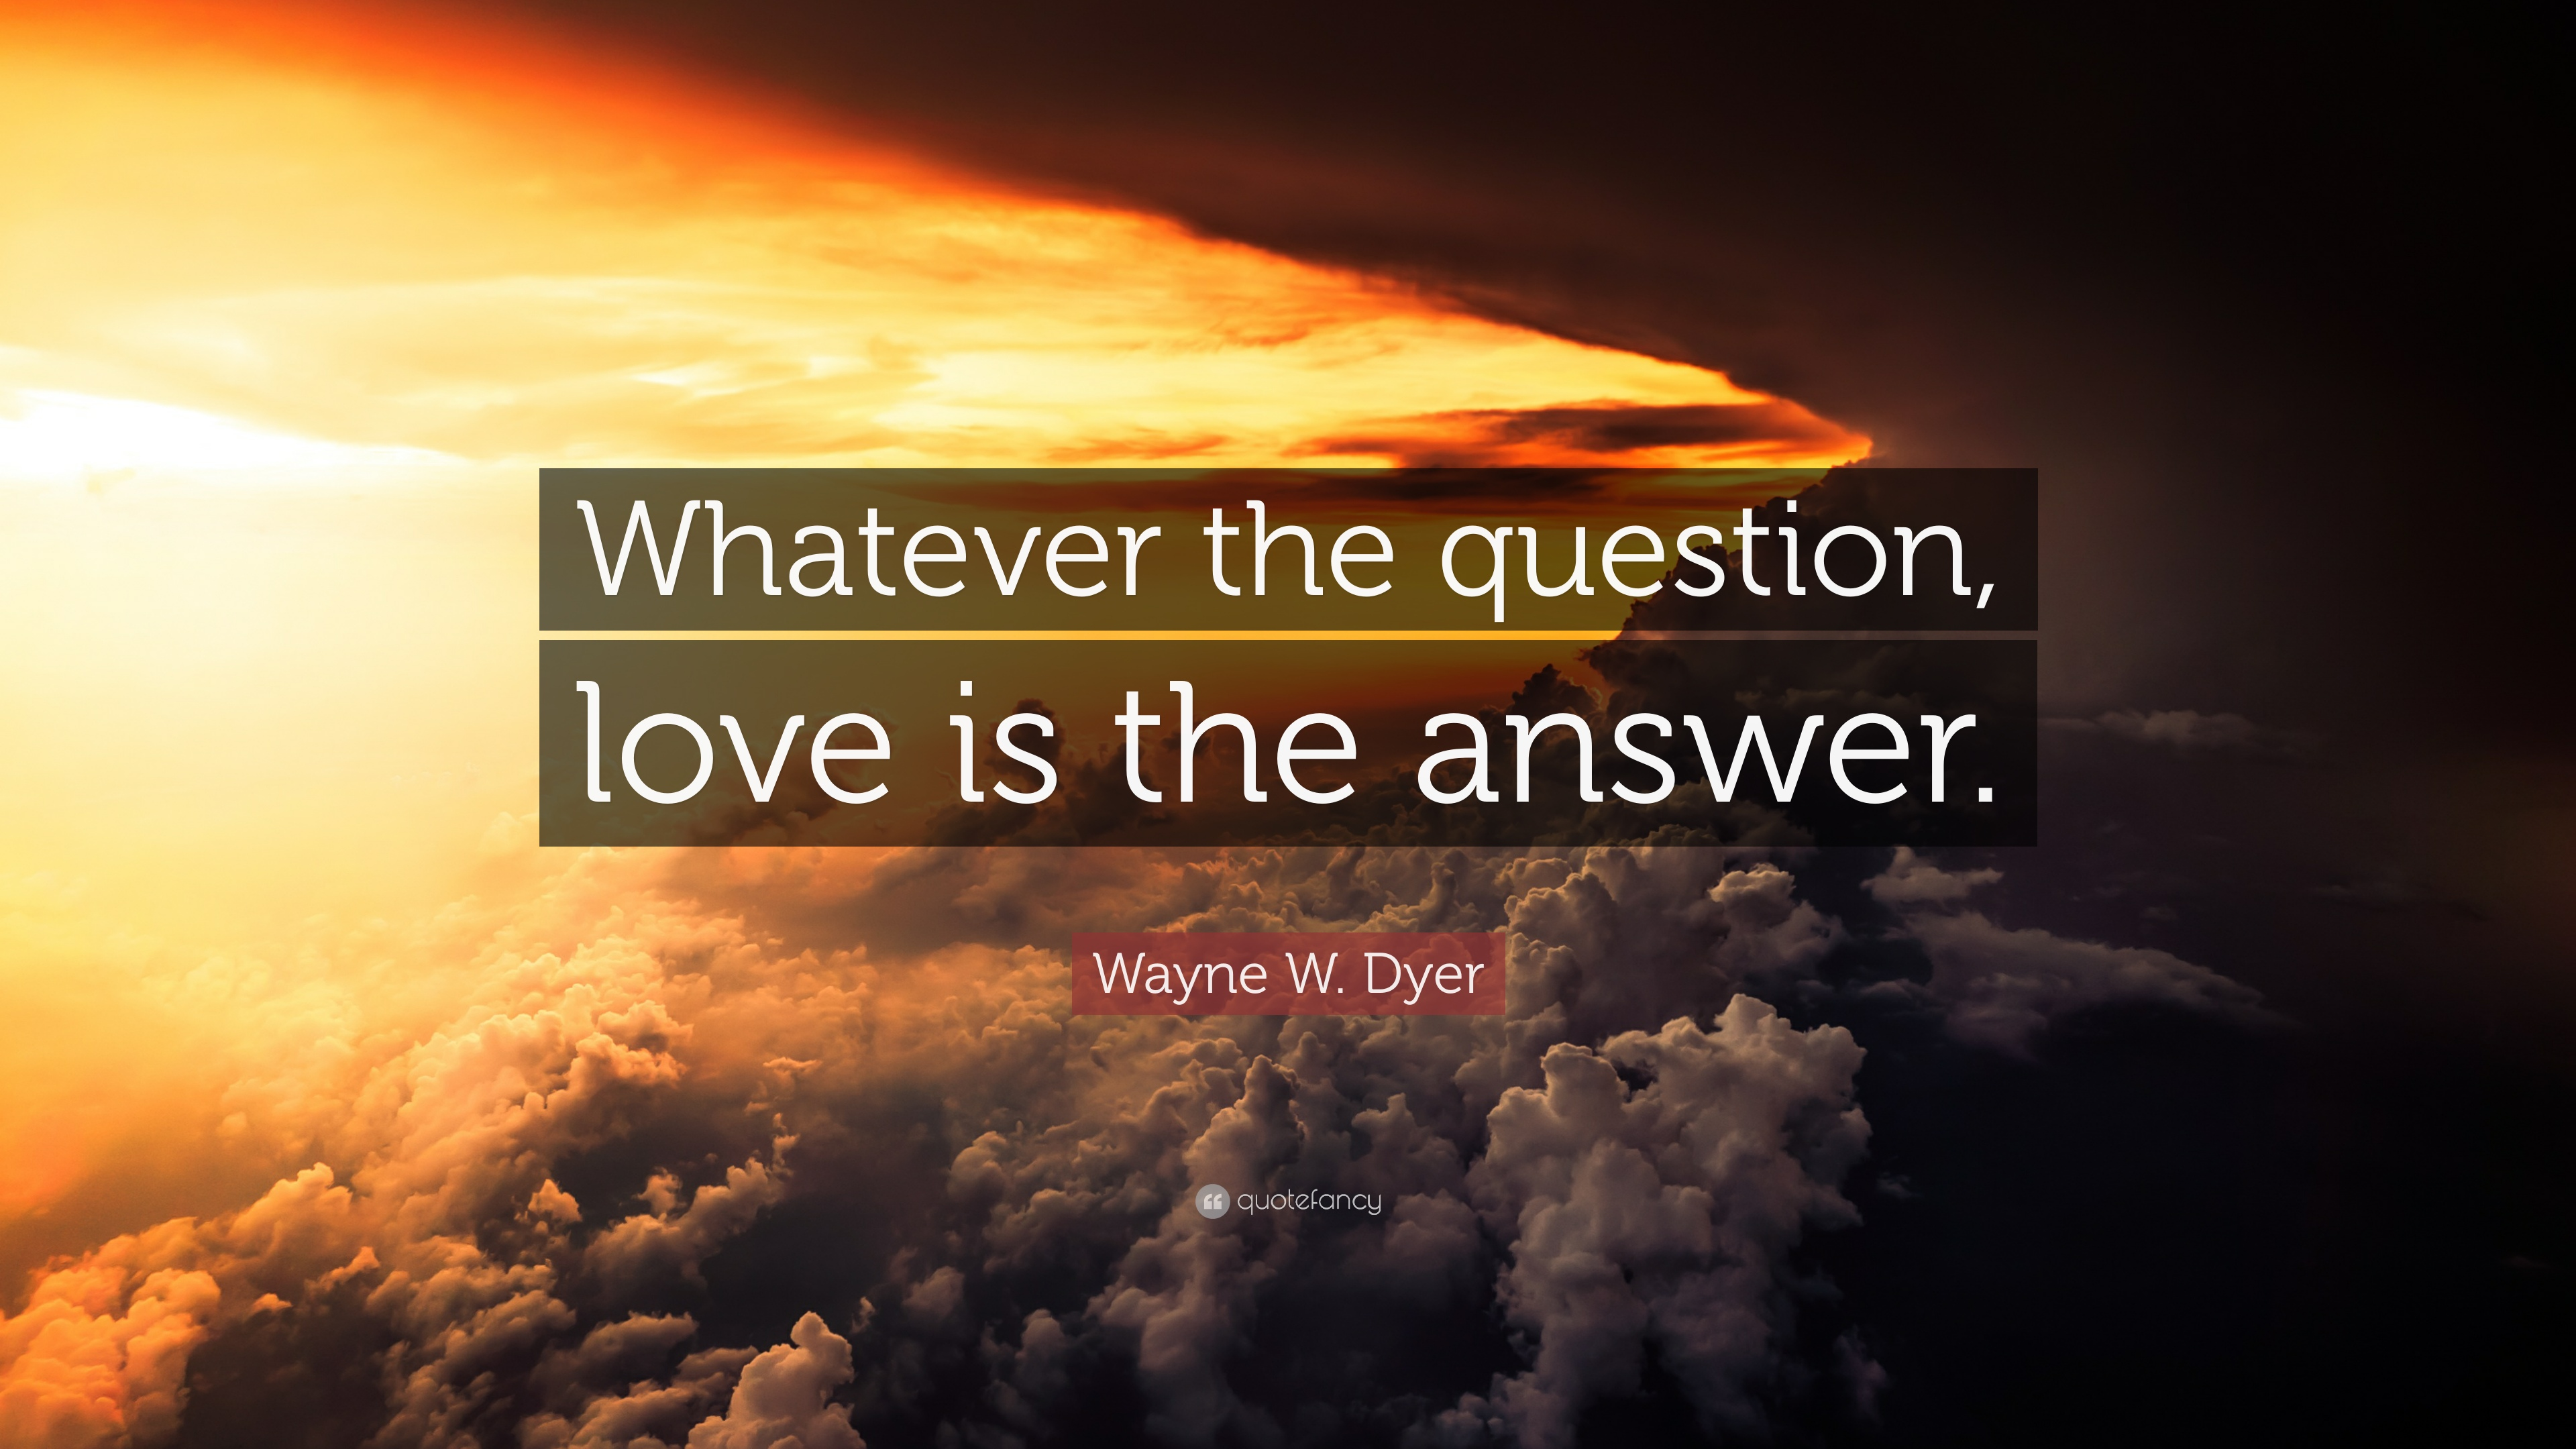 Wayne W Dyer Quote Whatever The Question Love Is The Answer